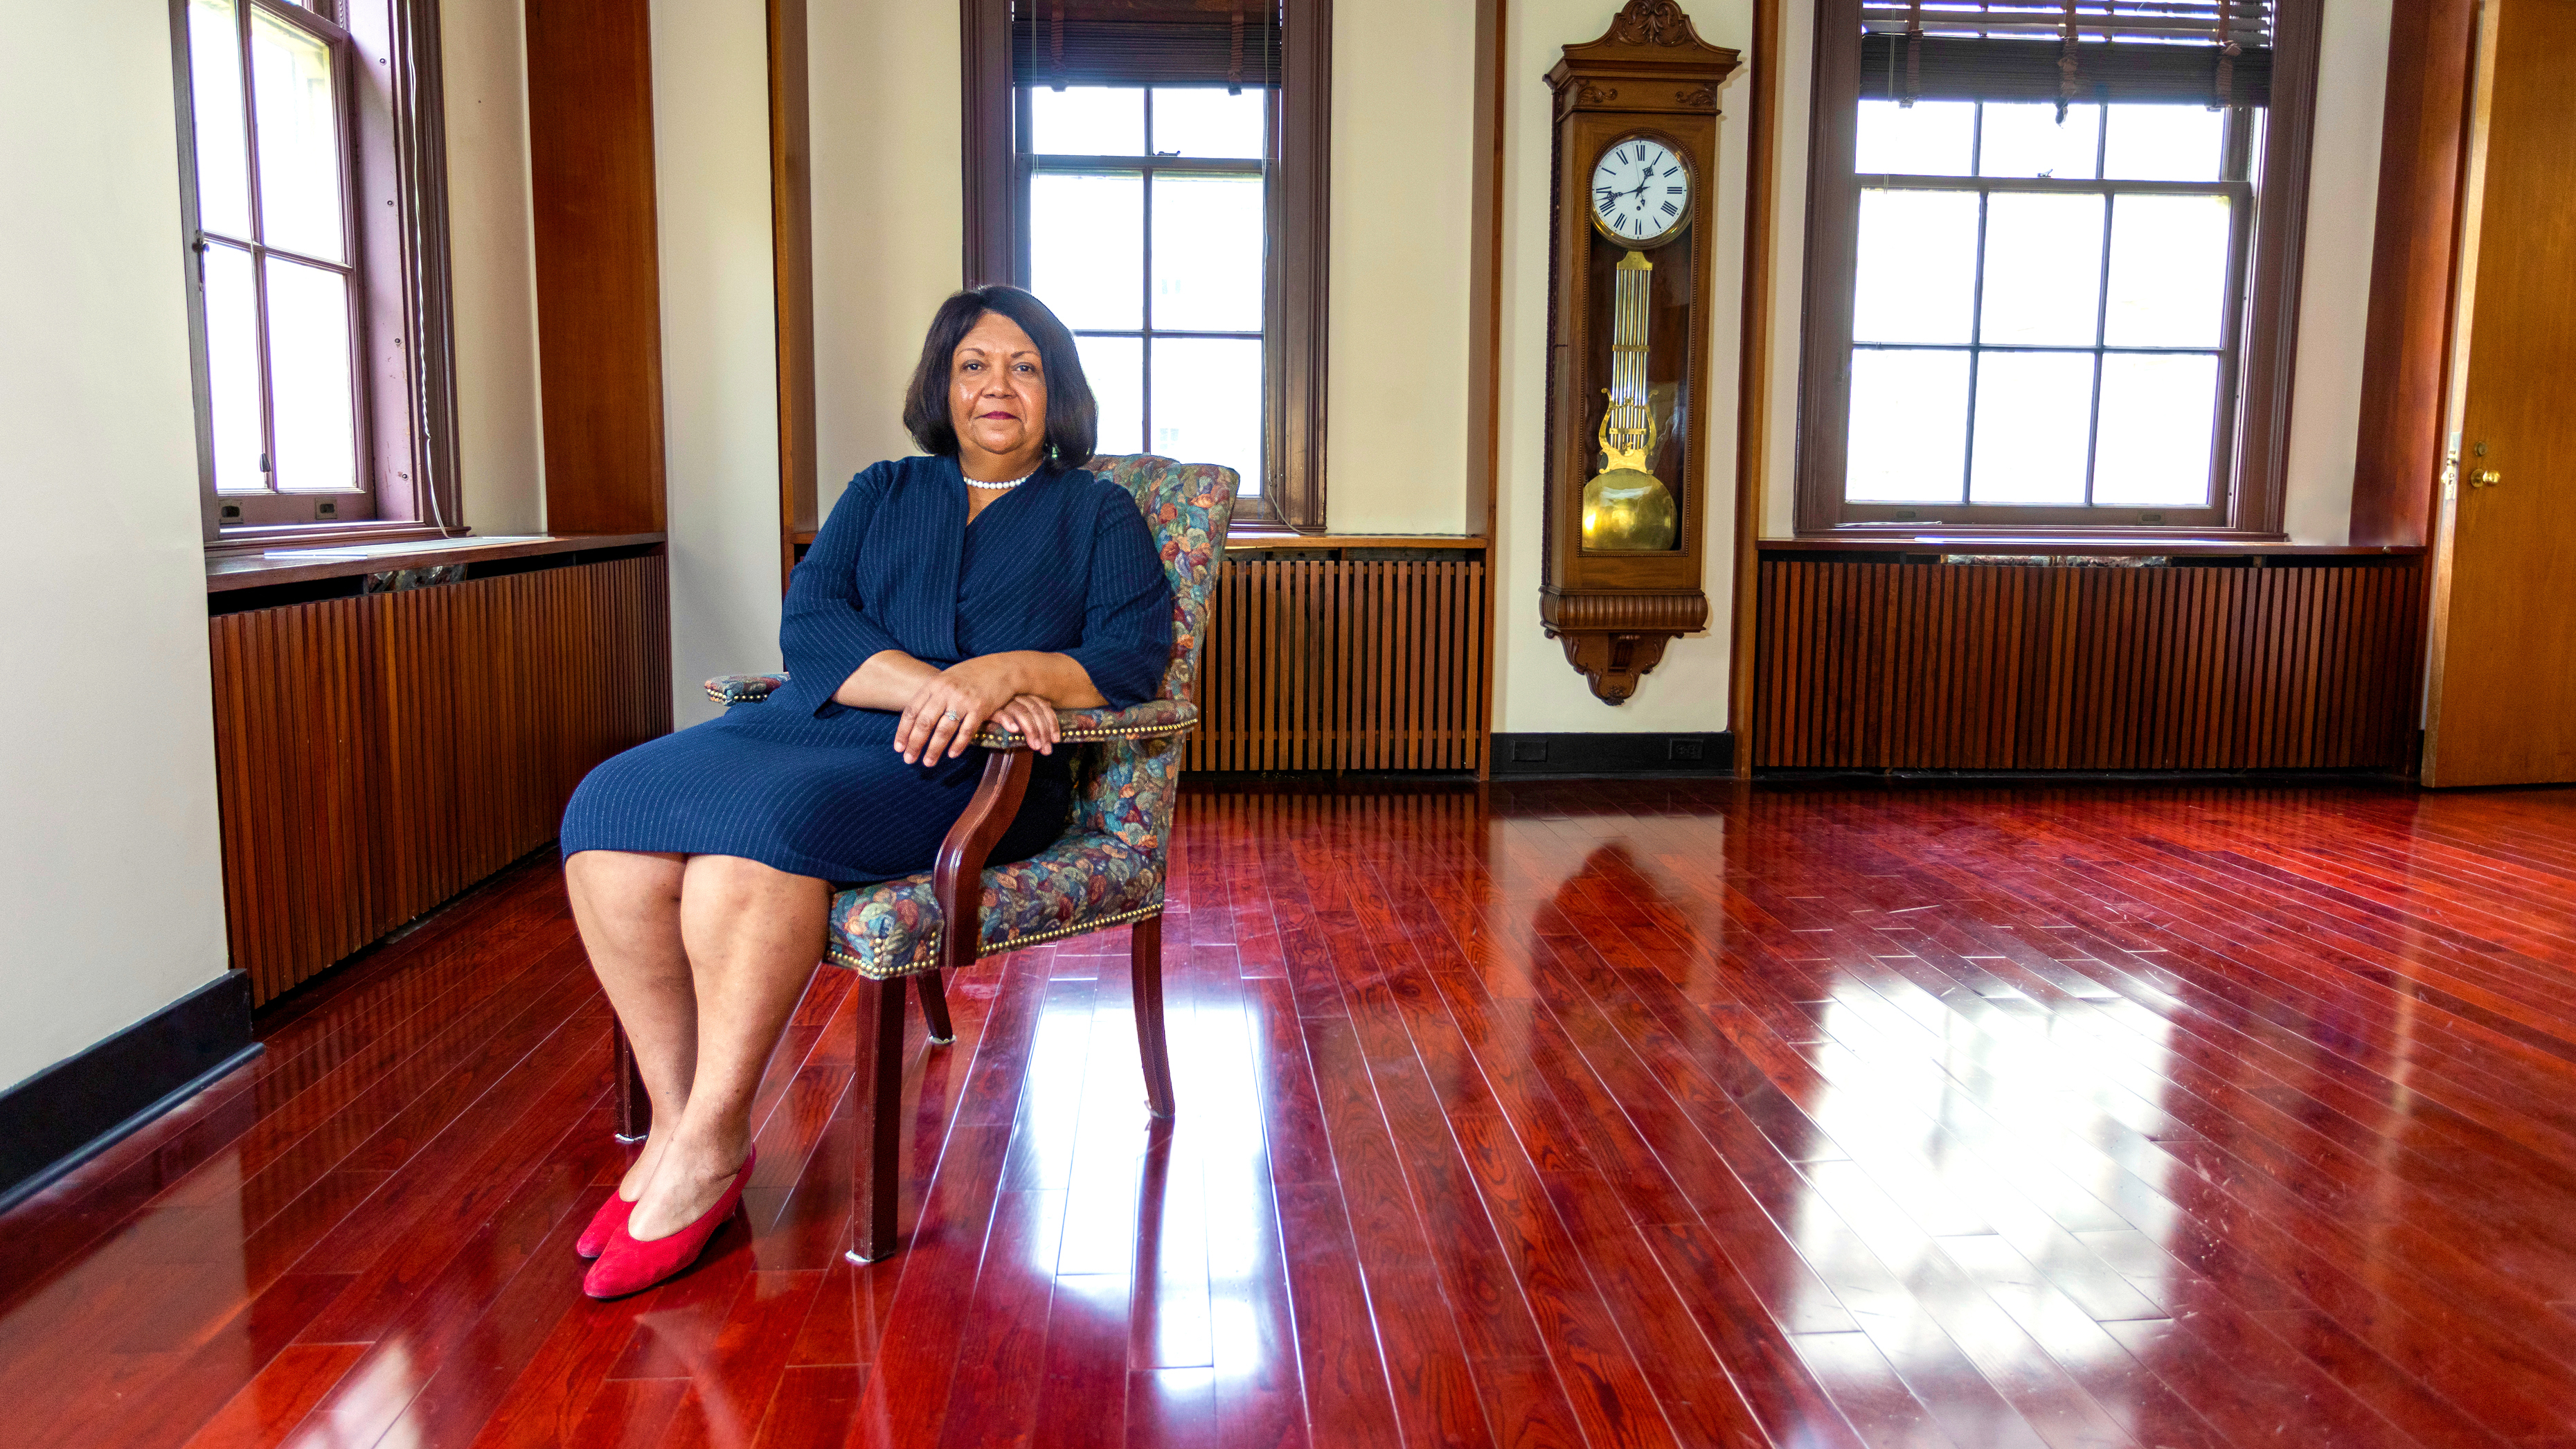 Waterbury CT Public Schools Superintendent Verna Ruffin sitting in a chair in her office